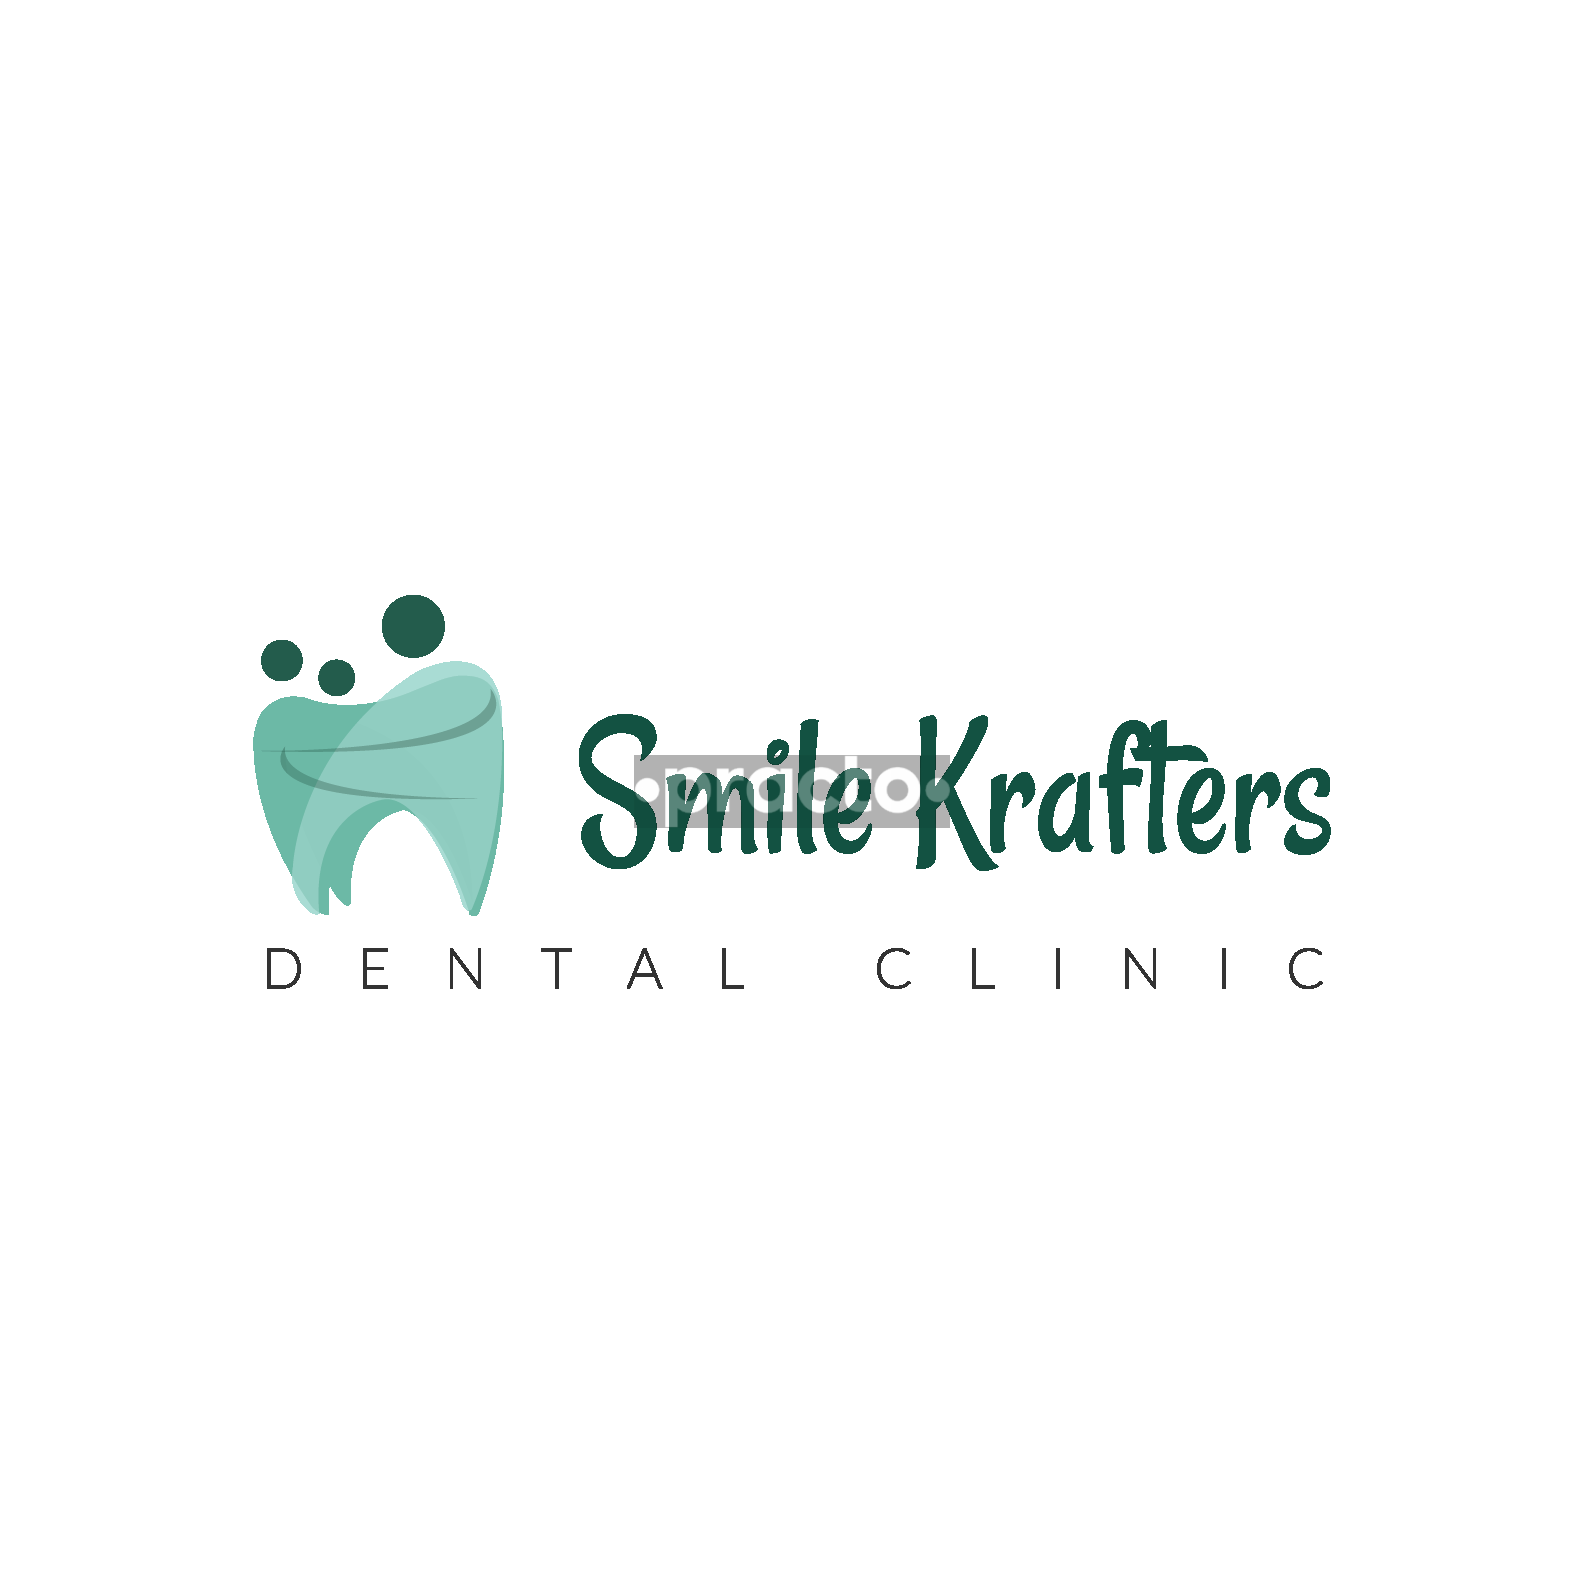 Smile Krafters Dental Clinic